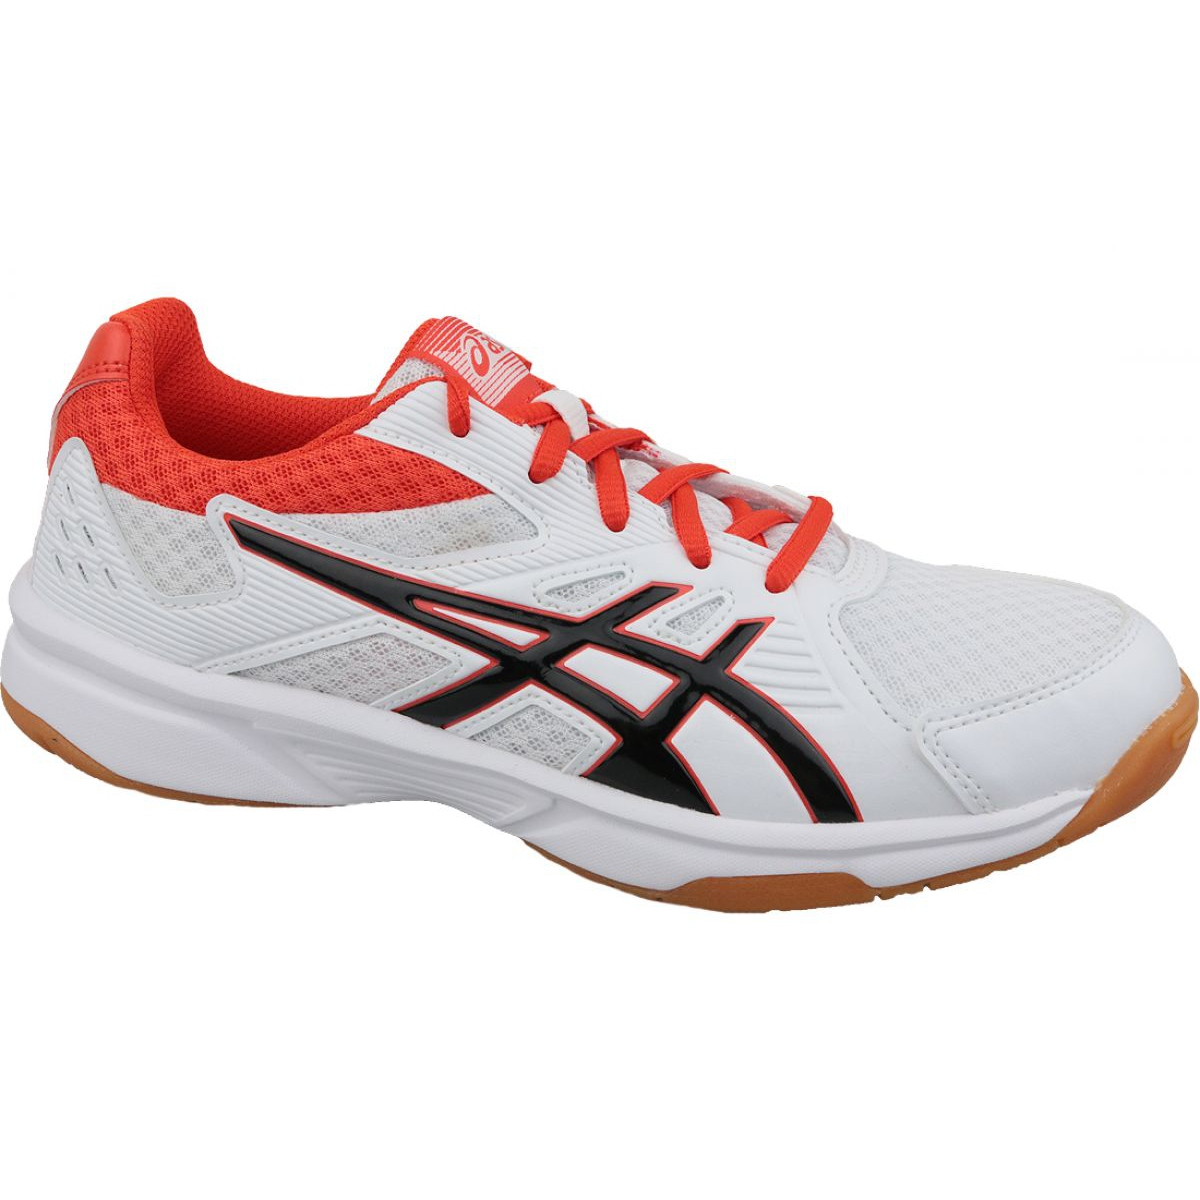 Chaussures de volleyball Asics Upcourt 3 M 1071A019 104